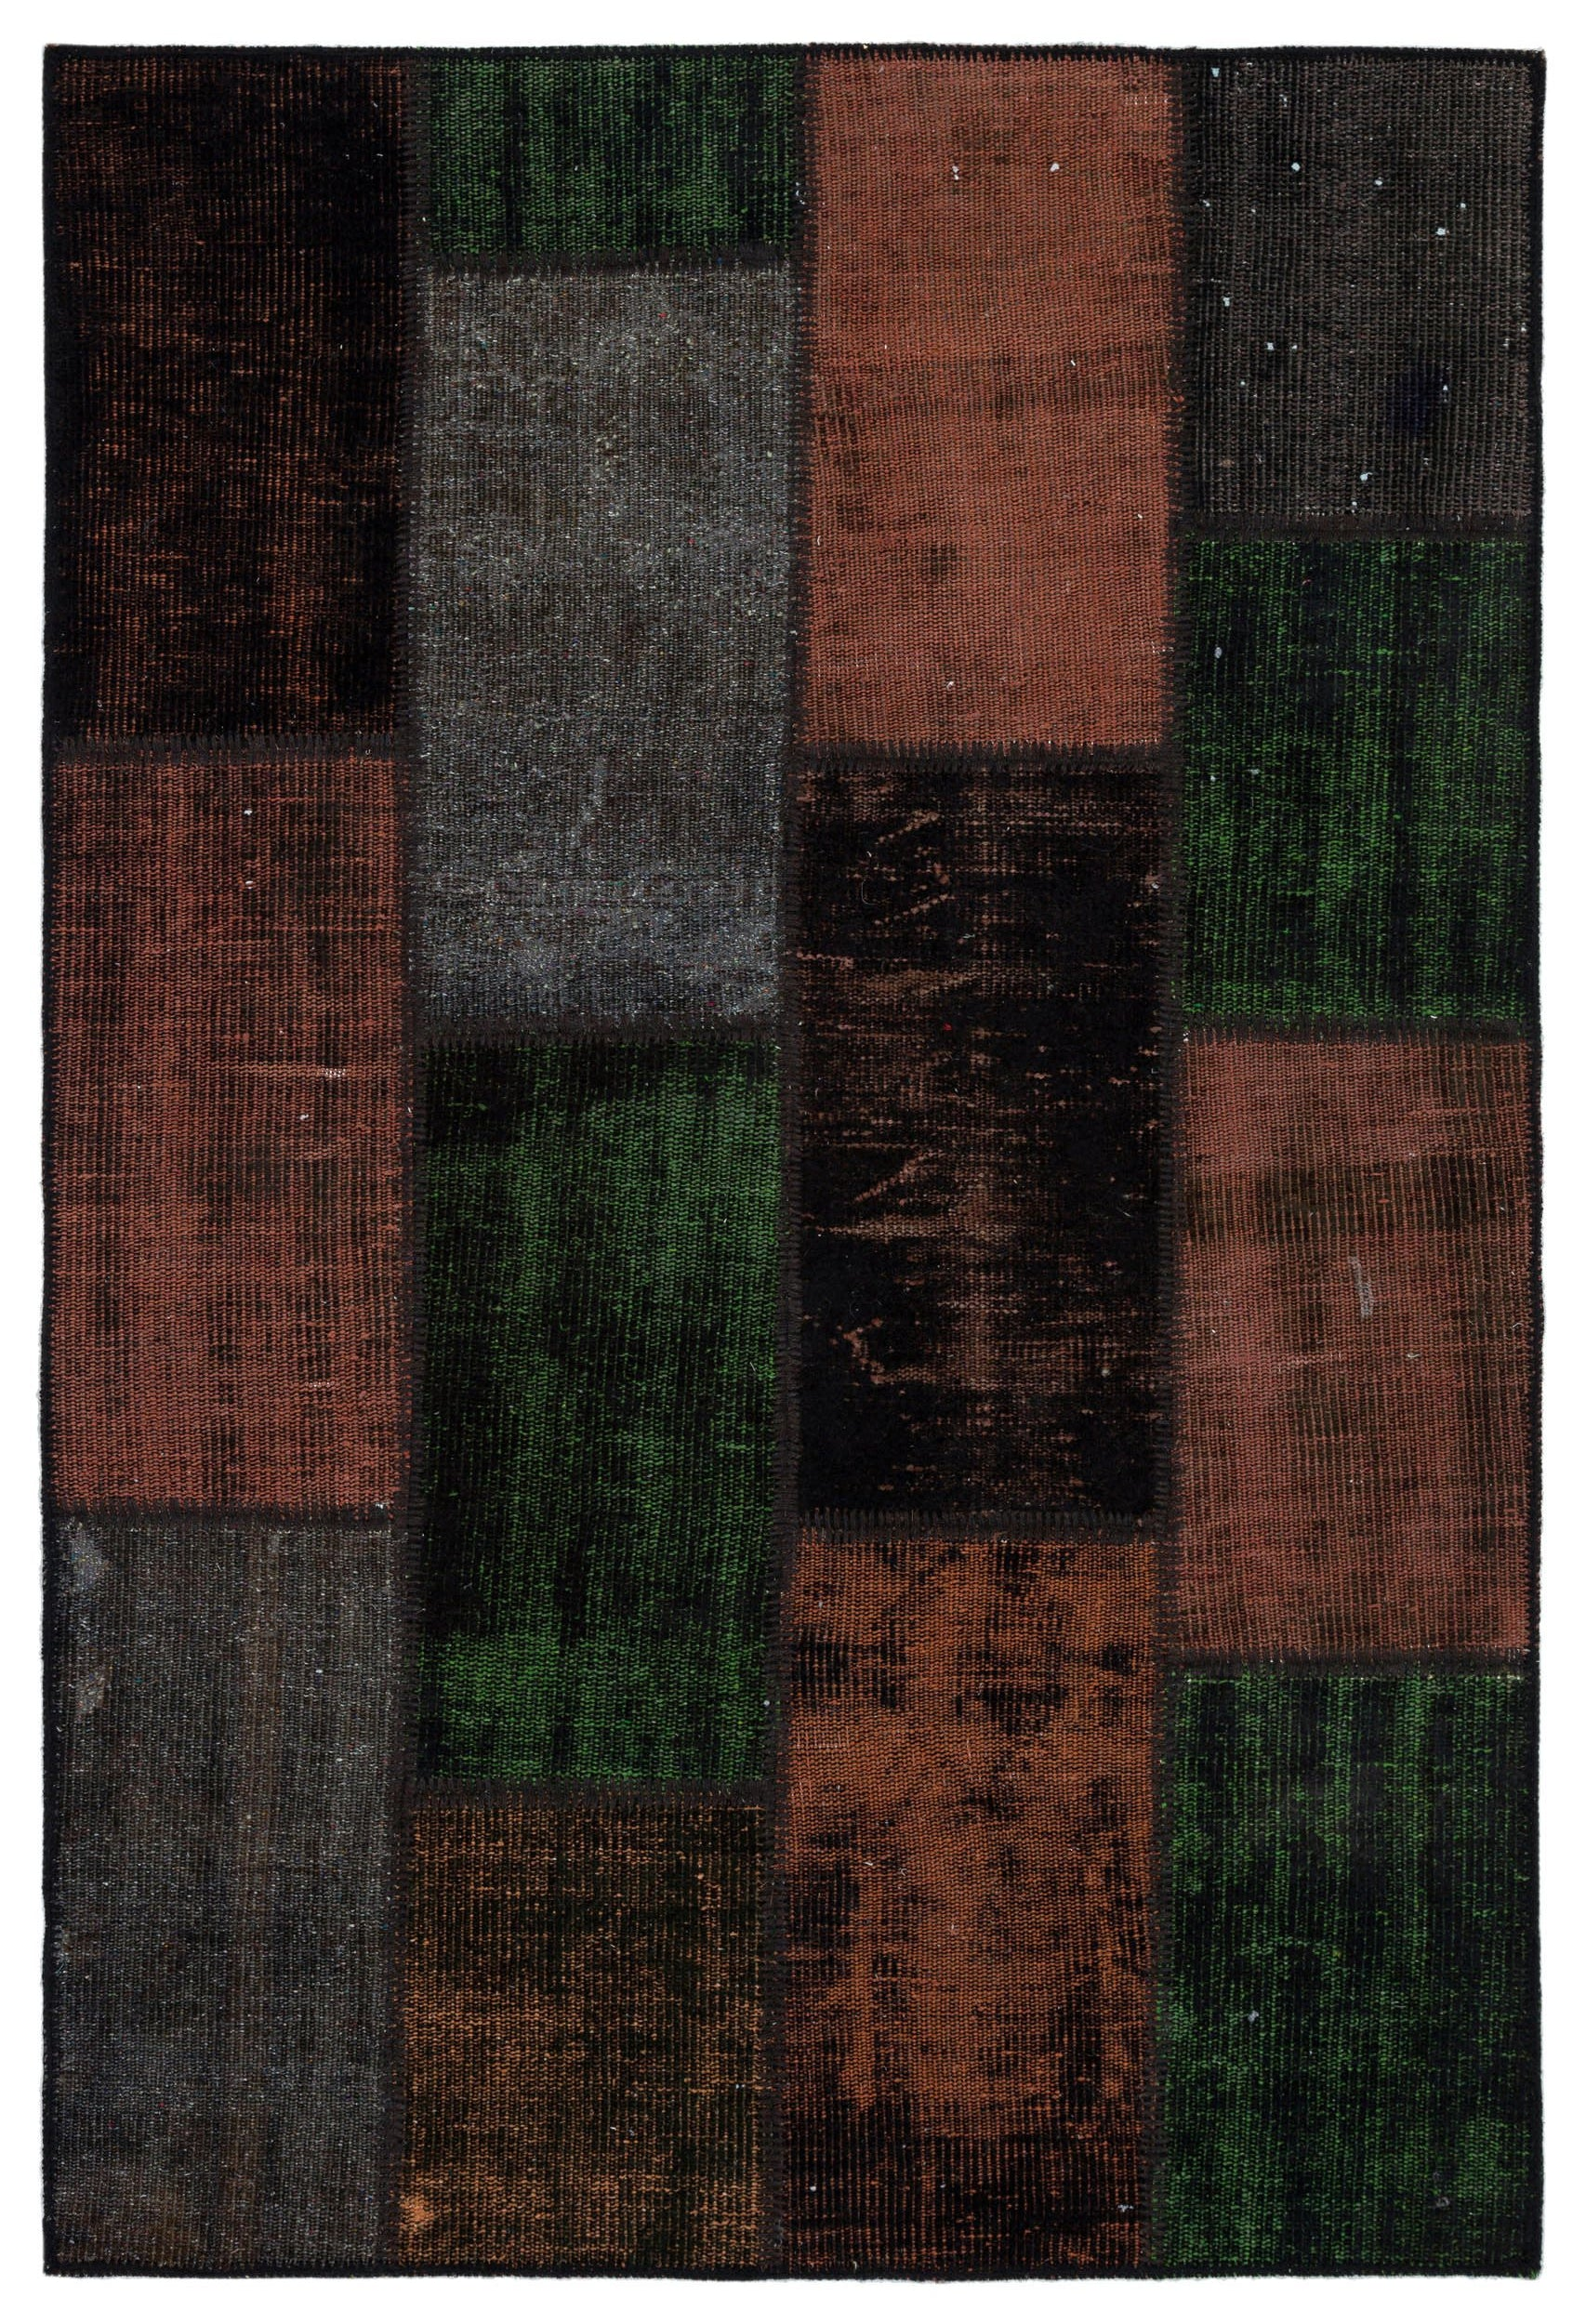 Brown Over Dyed Patchwork Unique Rug 4'0'' x 5'11'' ft 122 x 181 cm